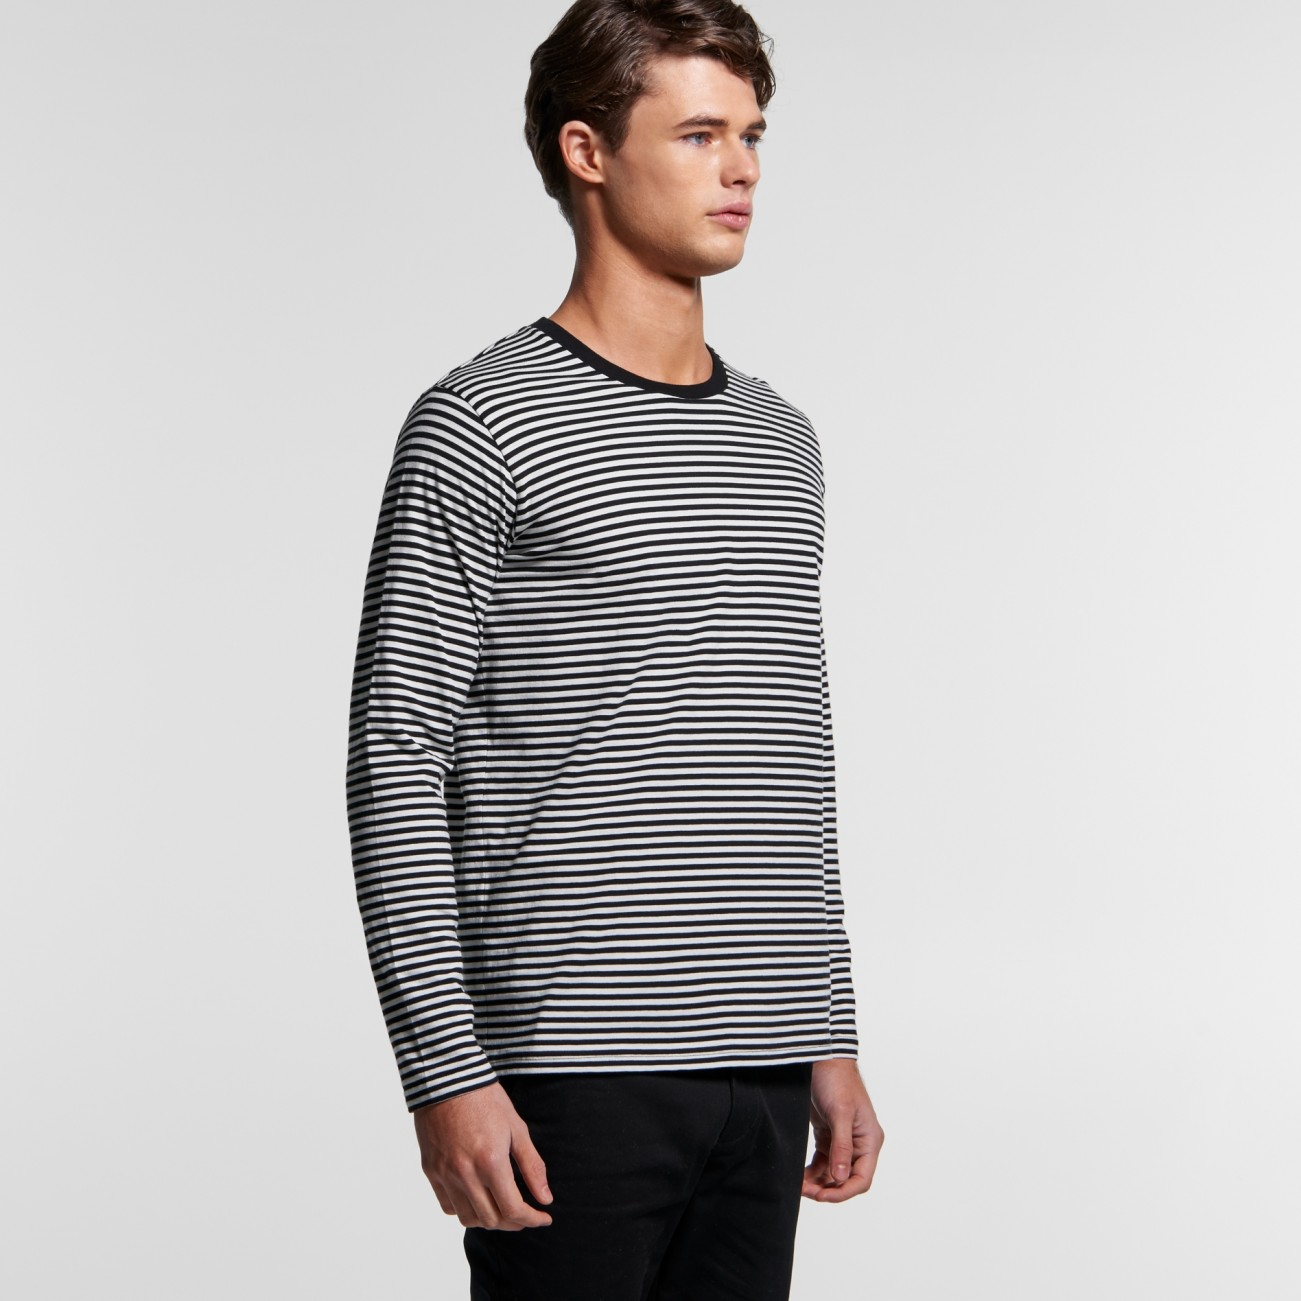 5061_bowery_stripe_ls_tee_turn.jpg